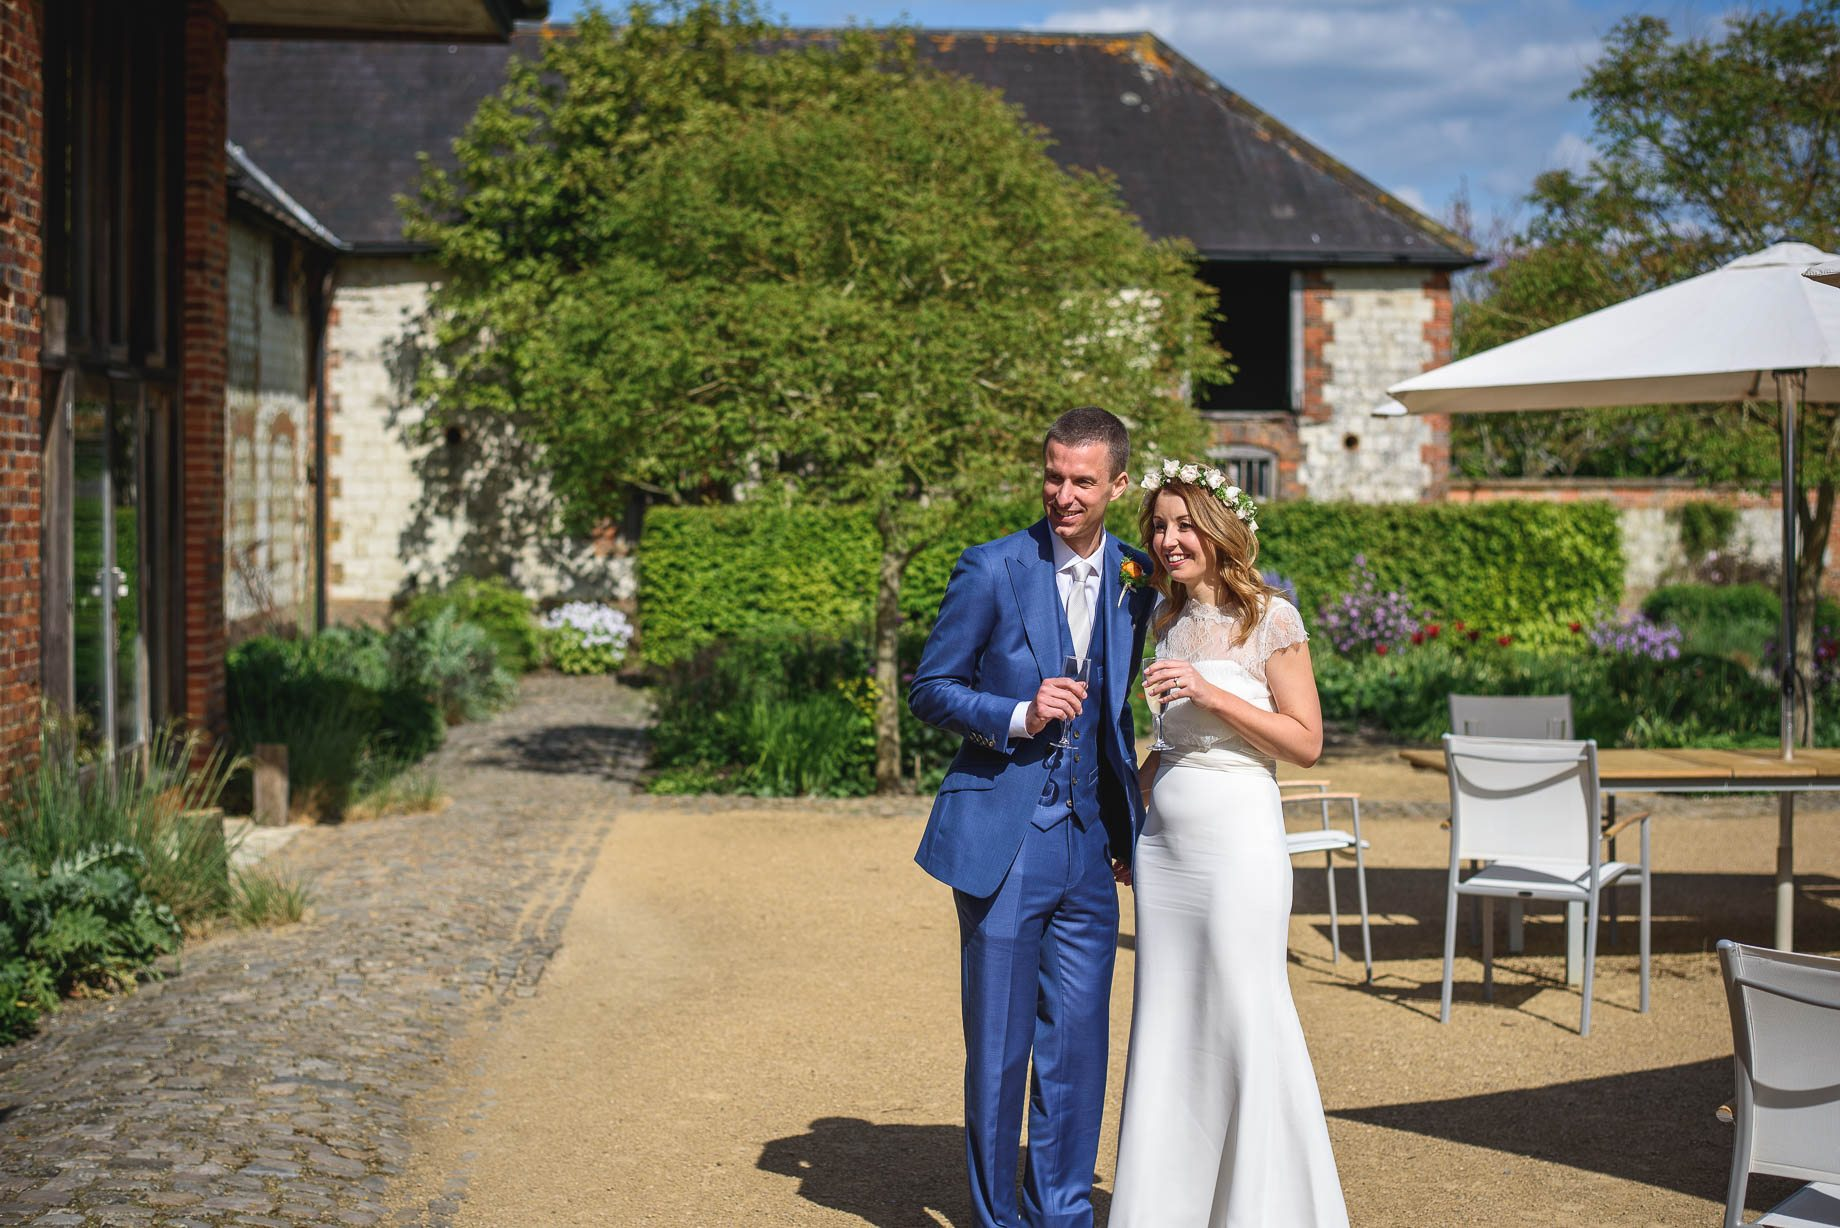 Bury Court Barn wedding photography by Guy Collier - Jo and Jamie (100 of 160)